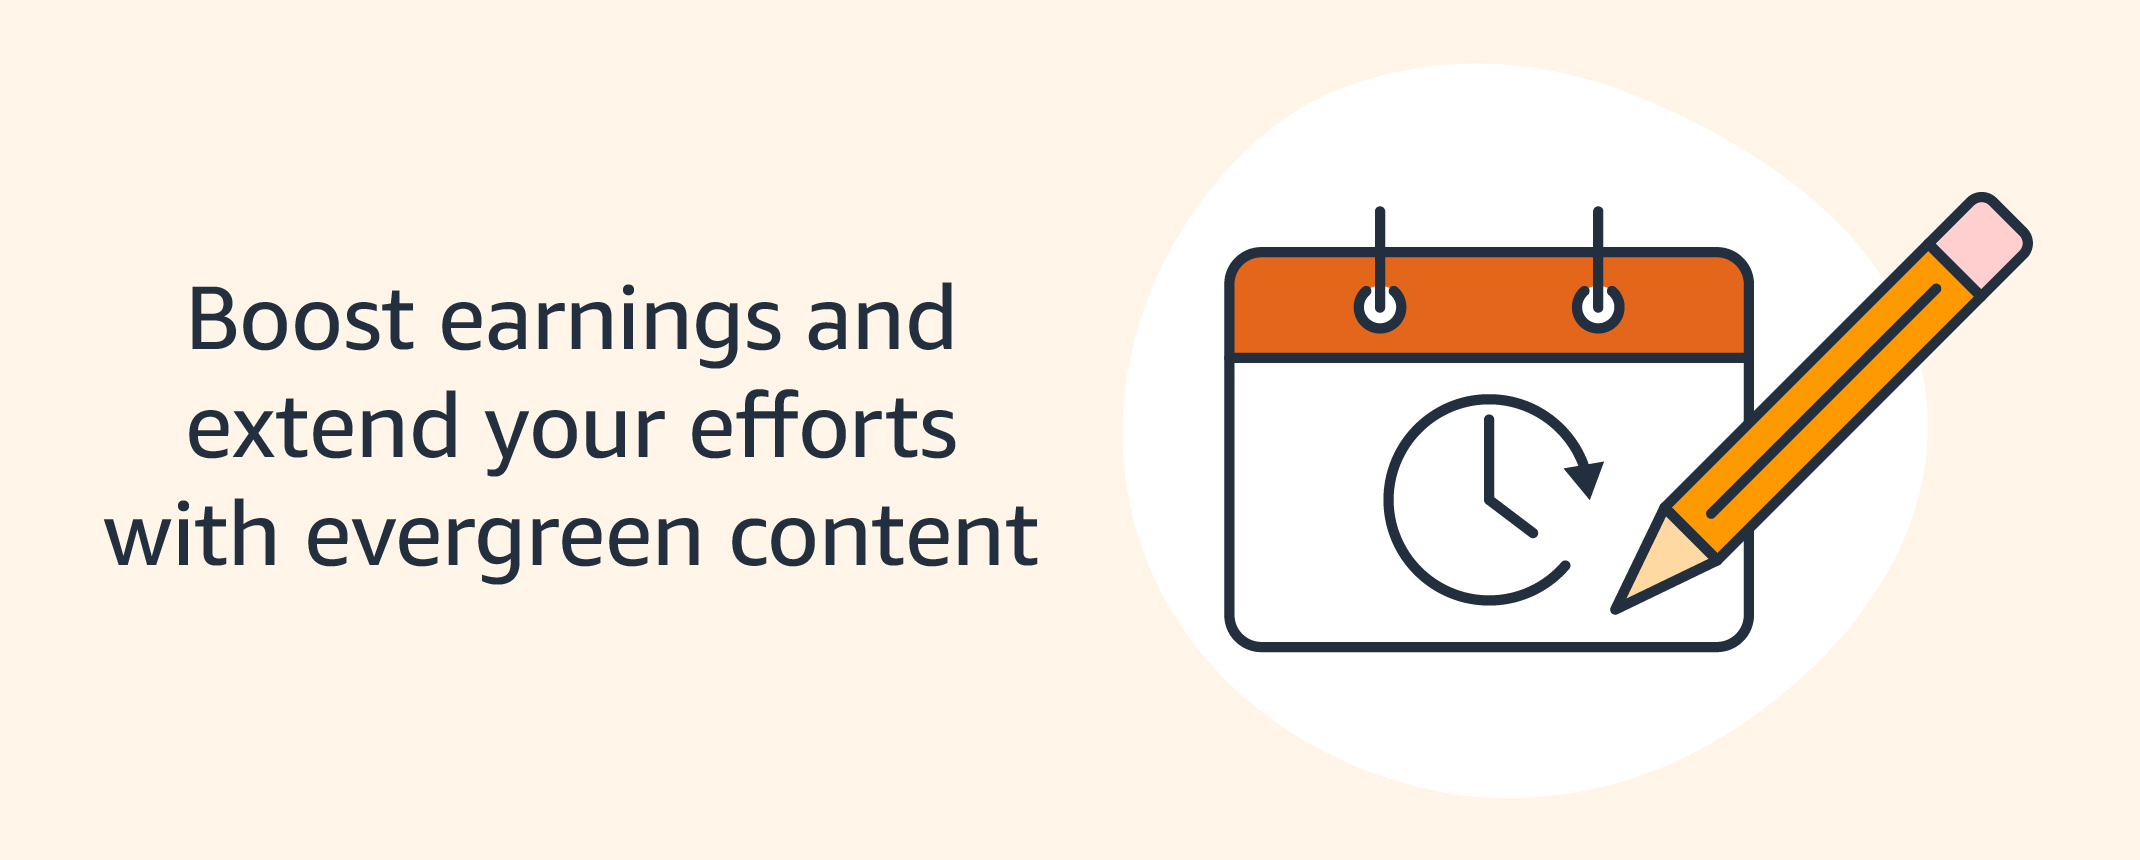 Boost earnings and extend your efforts with evergreen content